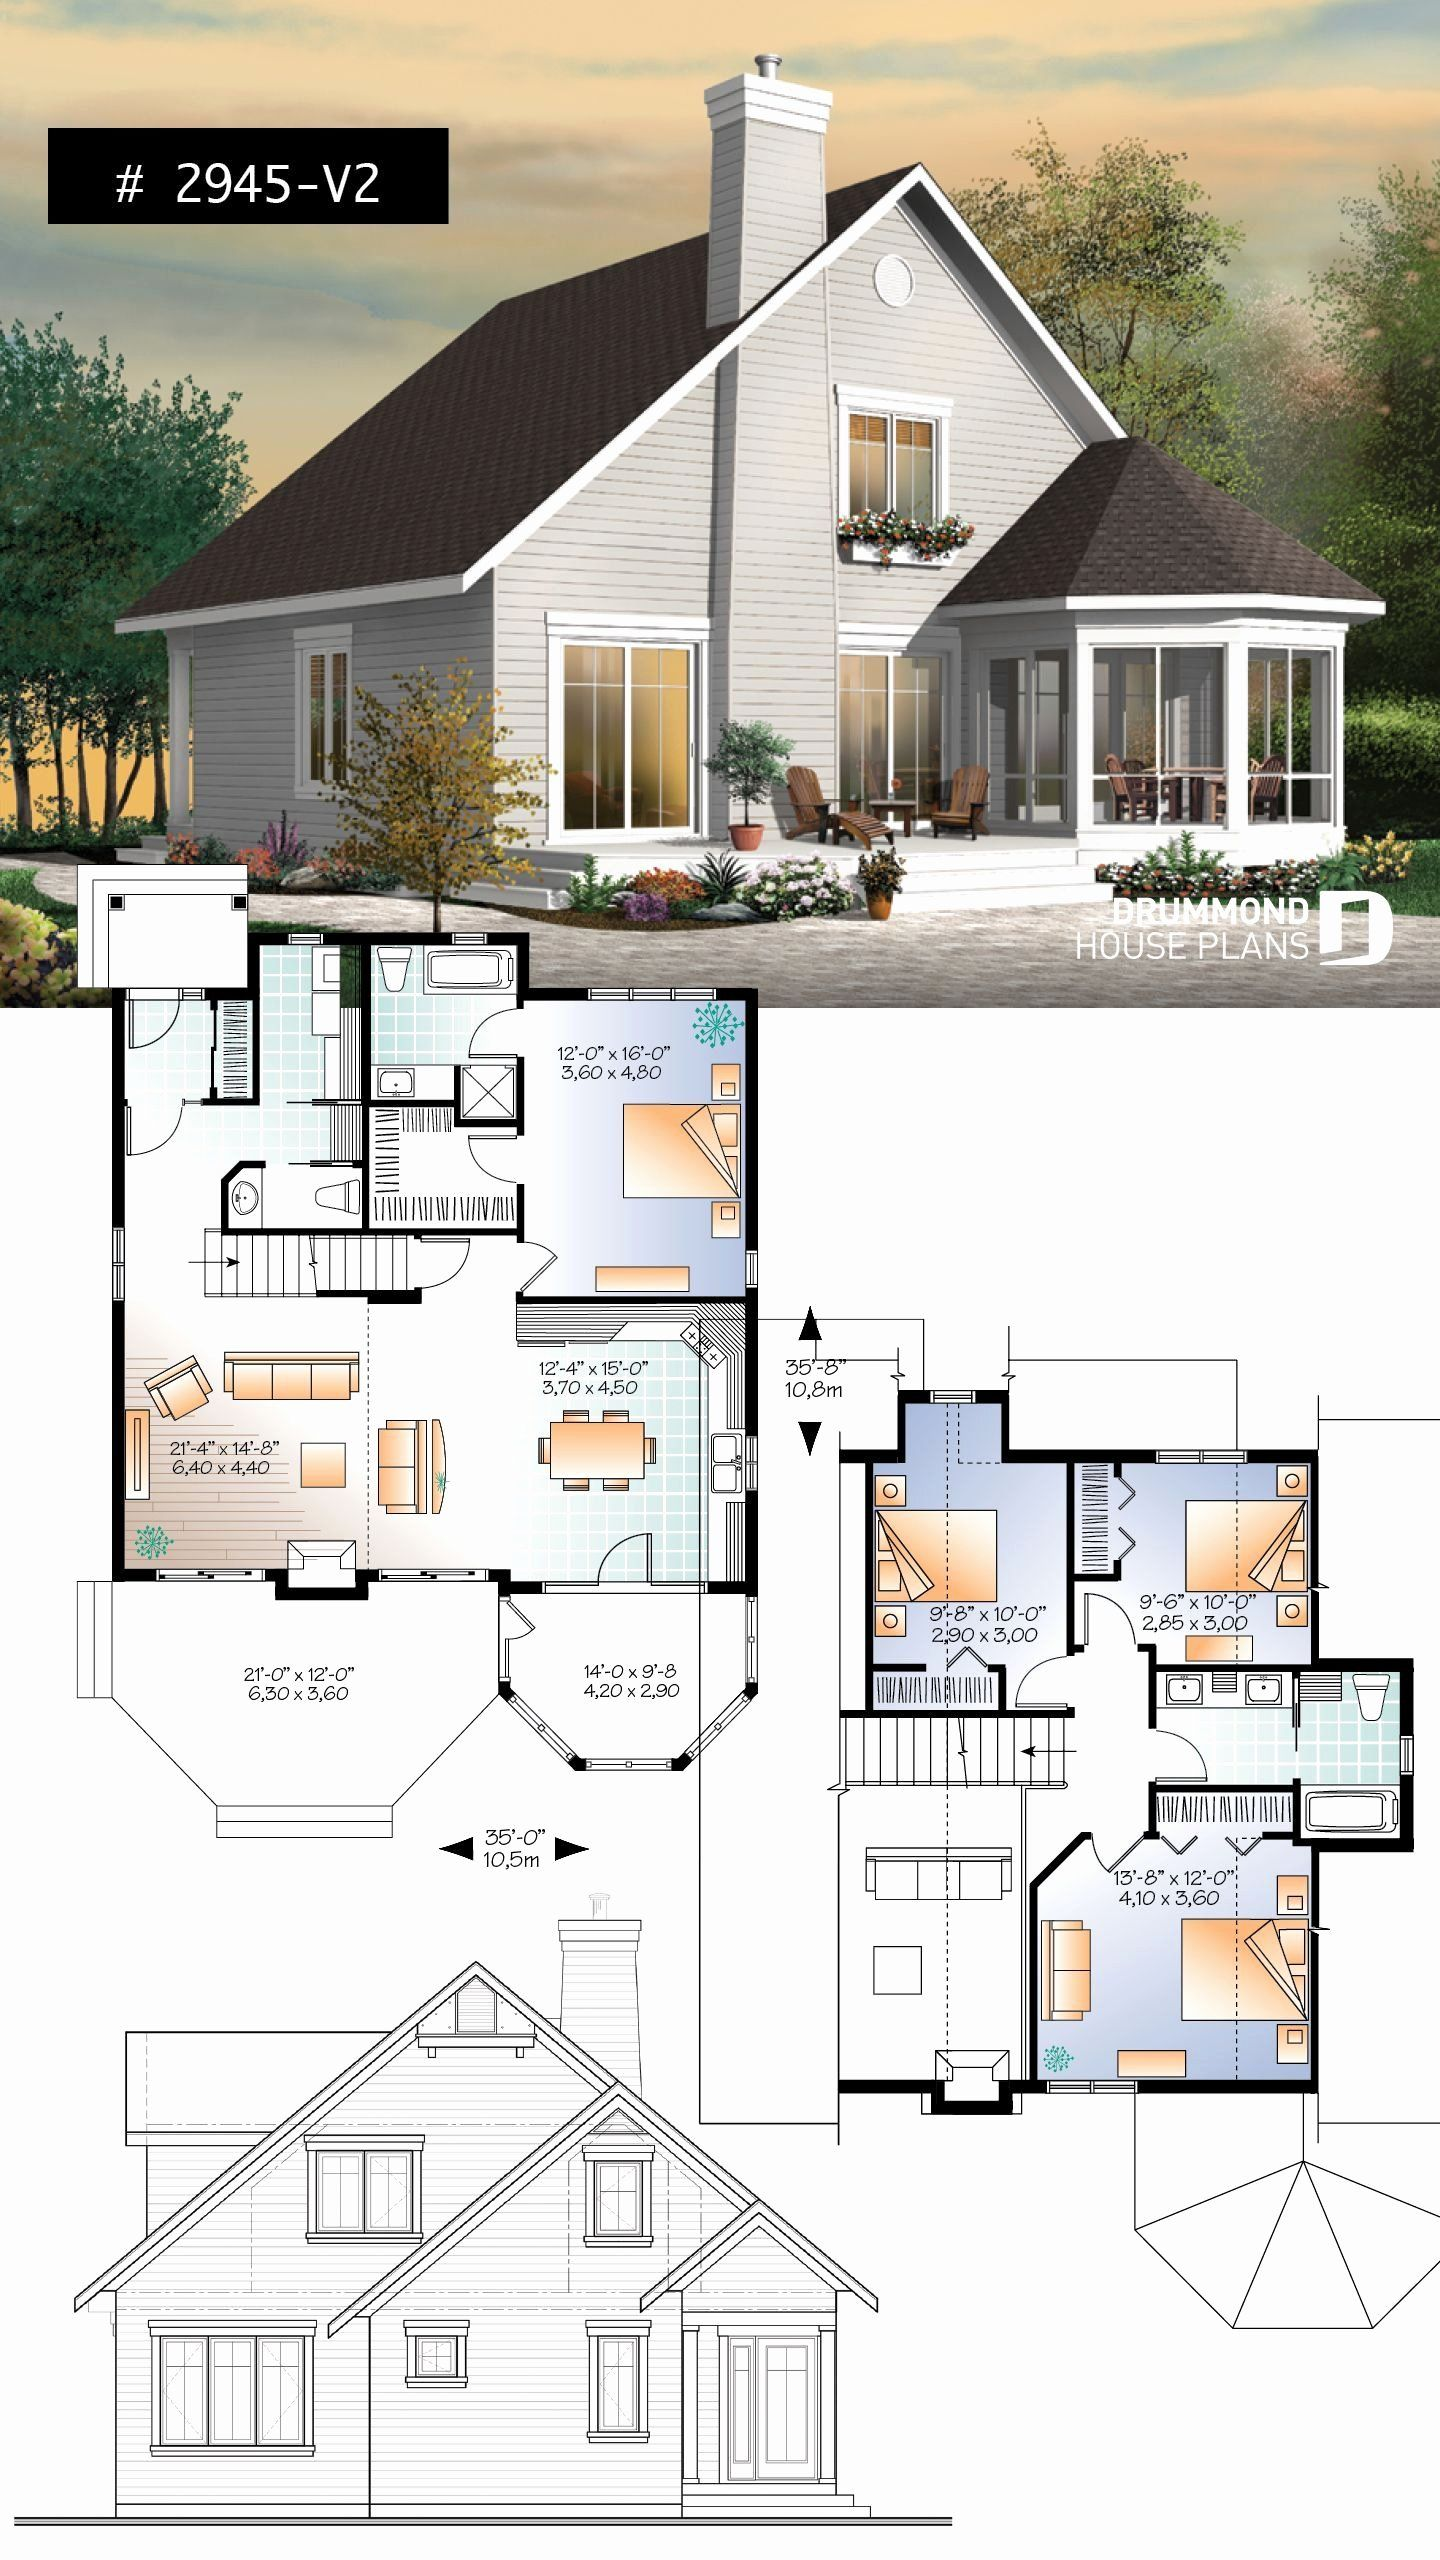 Chalet Style House Plans Lovely Popular Waterfront Home 4 Bedrooms 3 Bathrooms Chalet House Floor Plans House Plans Farmhouse Bedroom House Plans